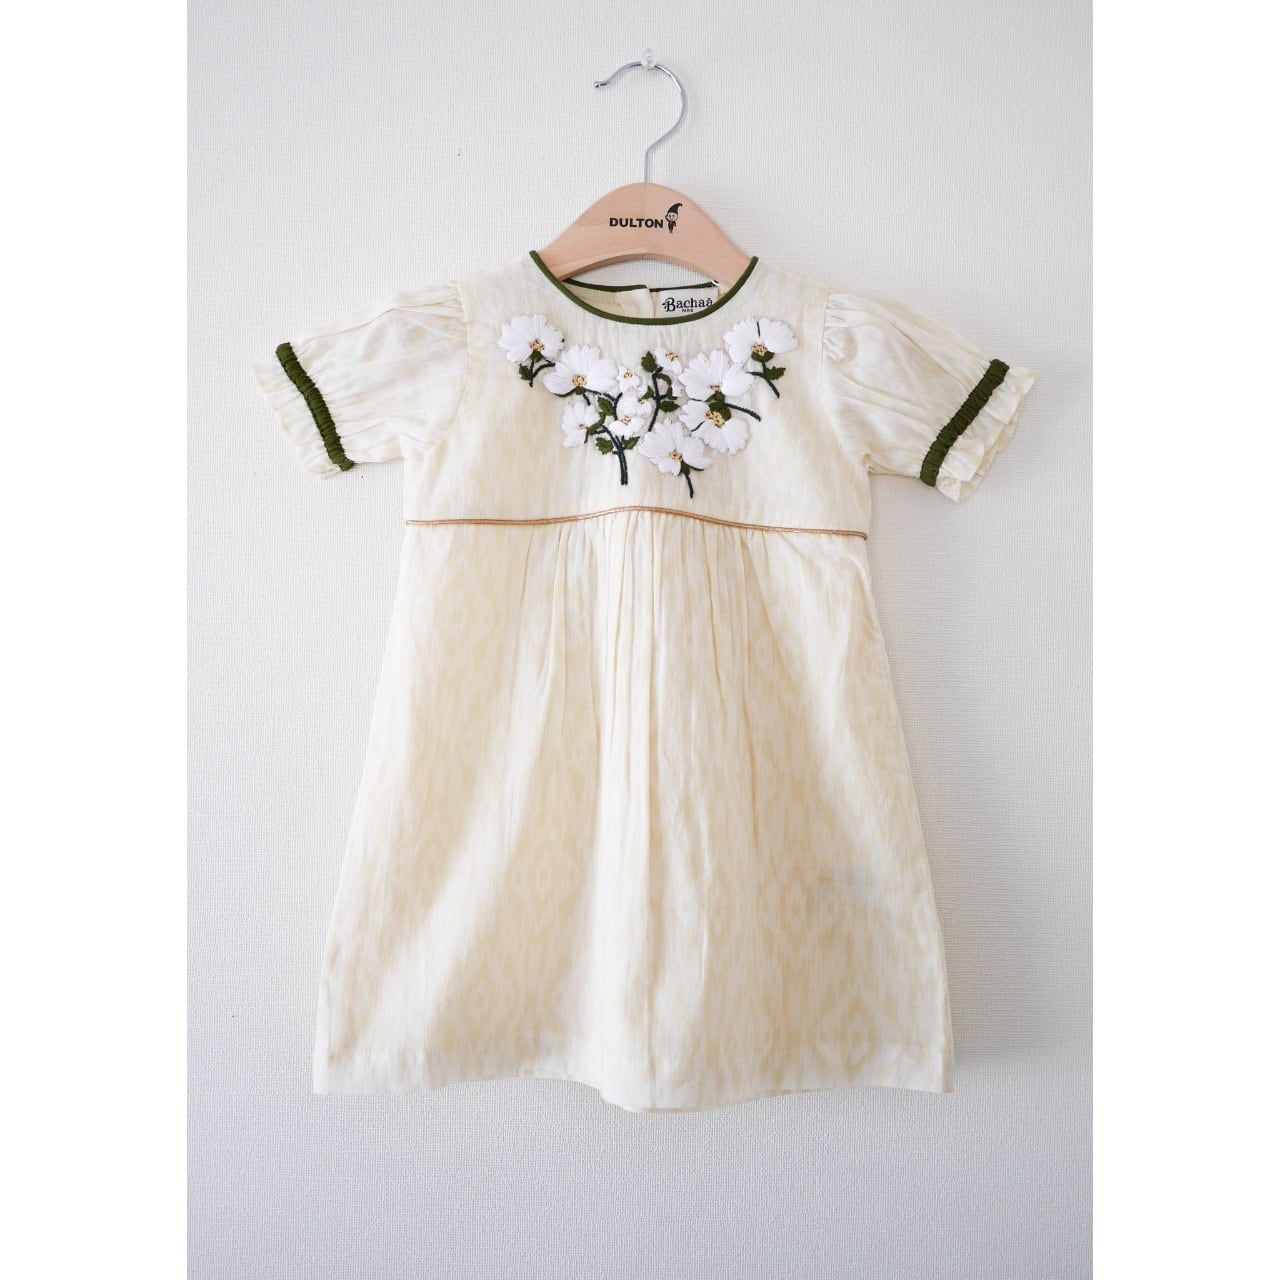 Embroidered Dress by Bachaa